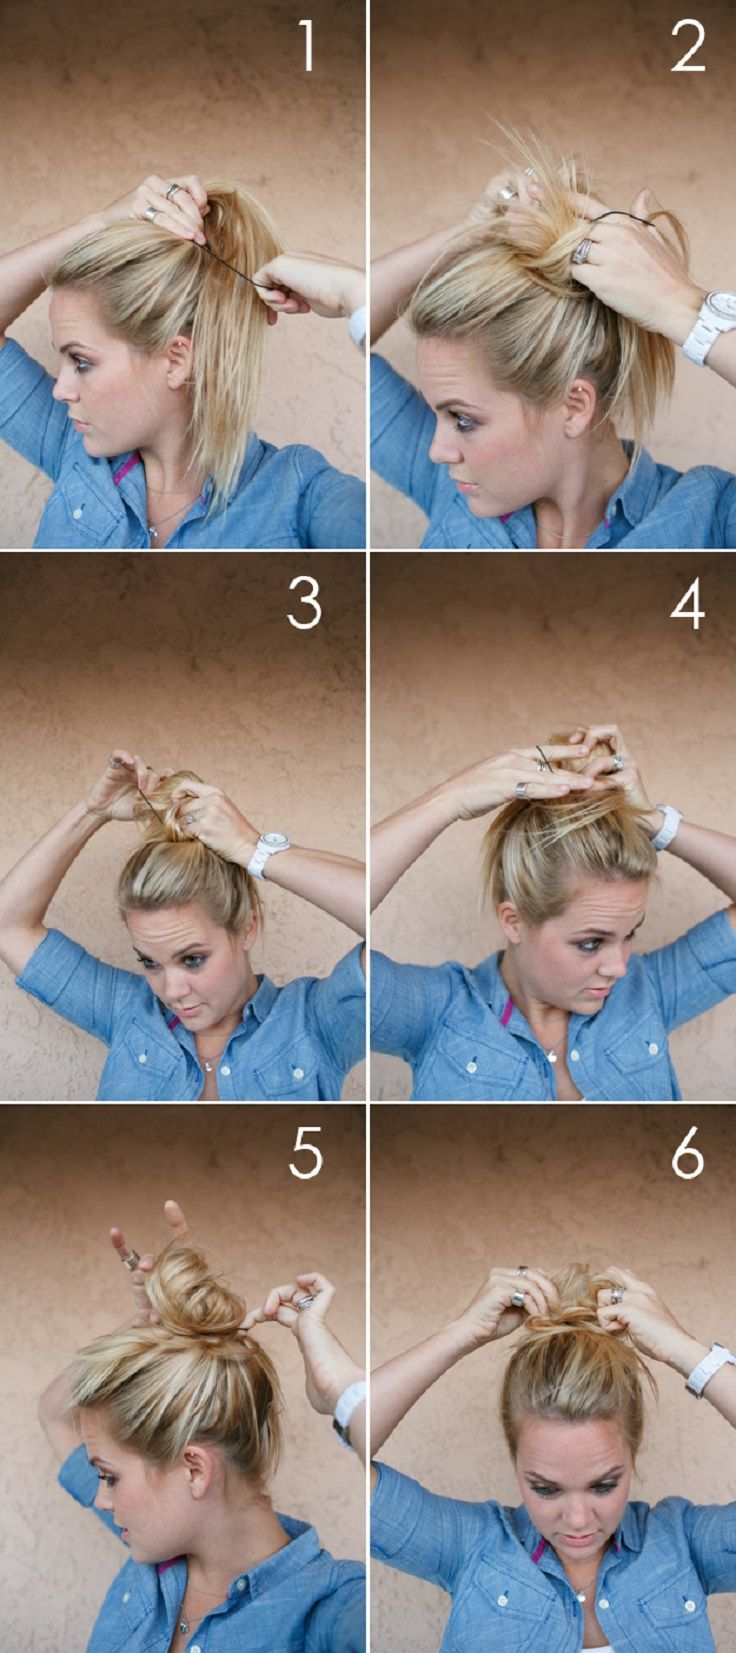 Top 10 Super Easy 5-Minute Hairstyles For Busy Ladies - my hair is too short for most of these now but good to know.